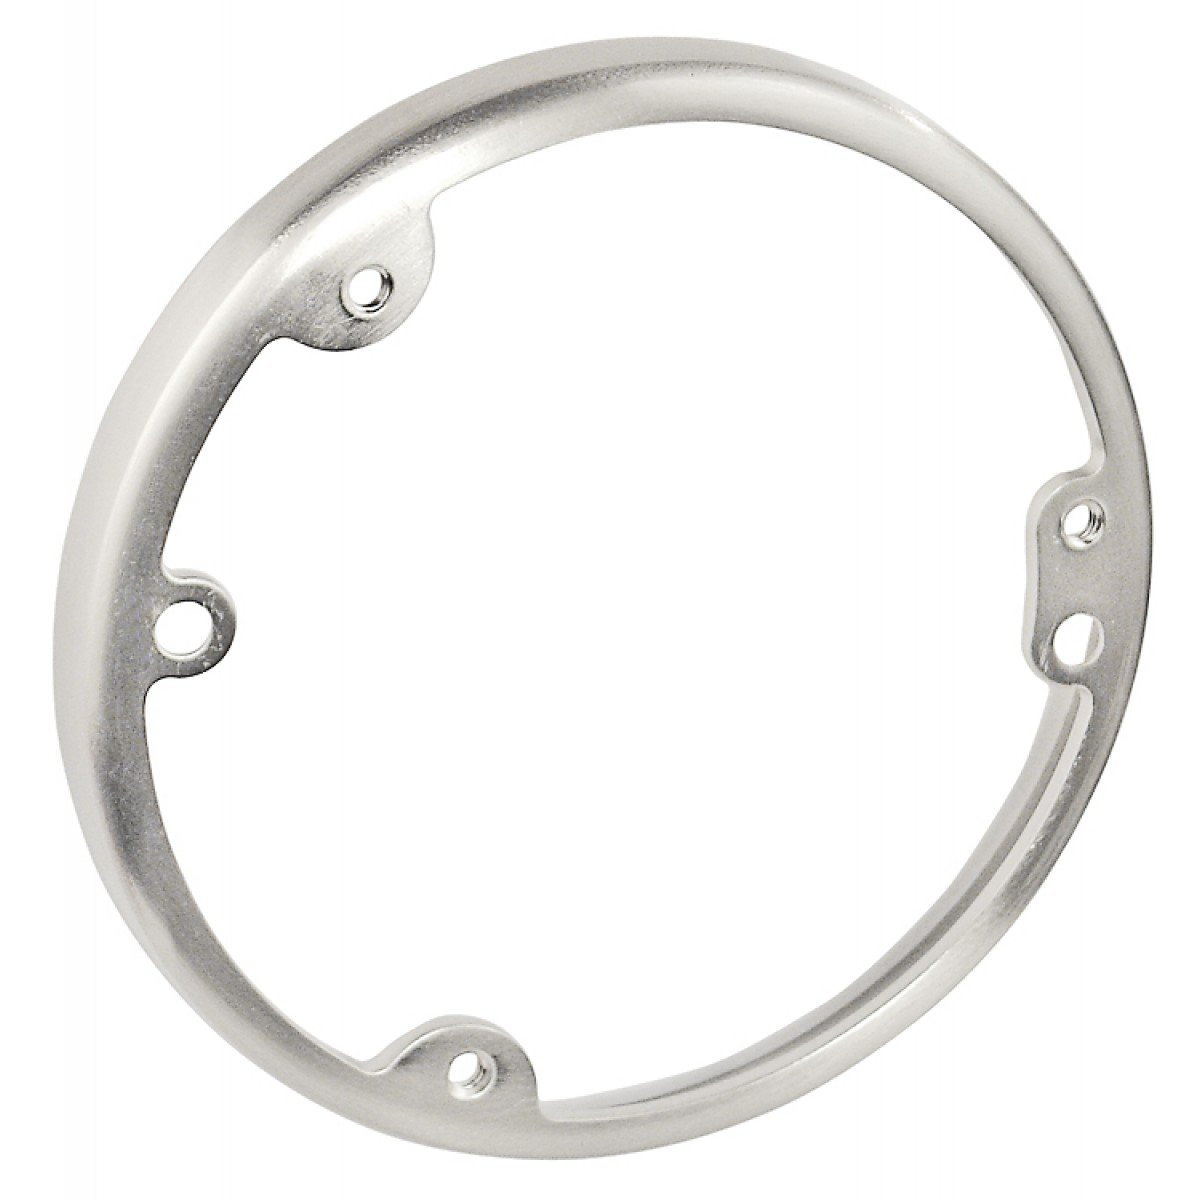 2 Pcs, 4-1/2 In Round Floor Flange, Stainless Steel Finish, Brushed Stainless for Use On 4-1/2In Round Concrete Floor Boxes